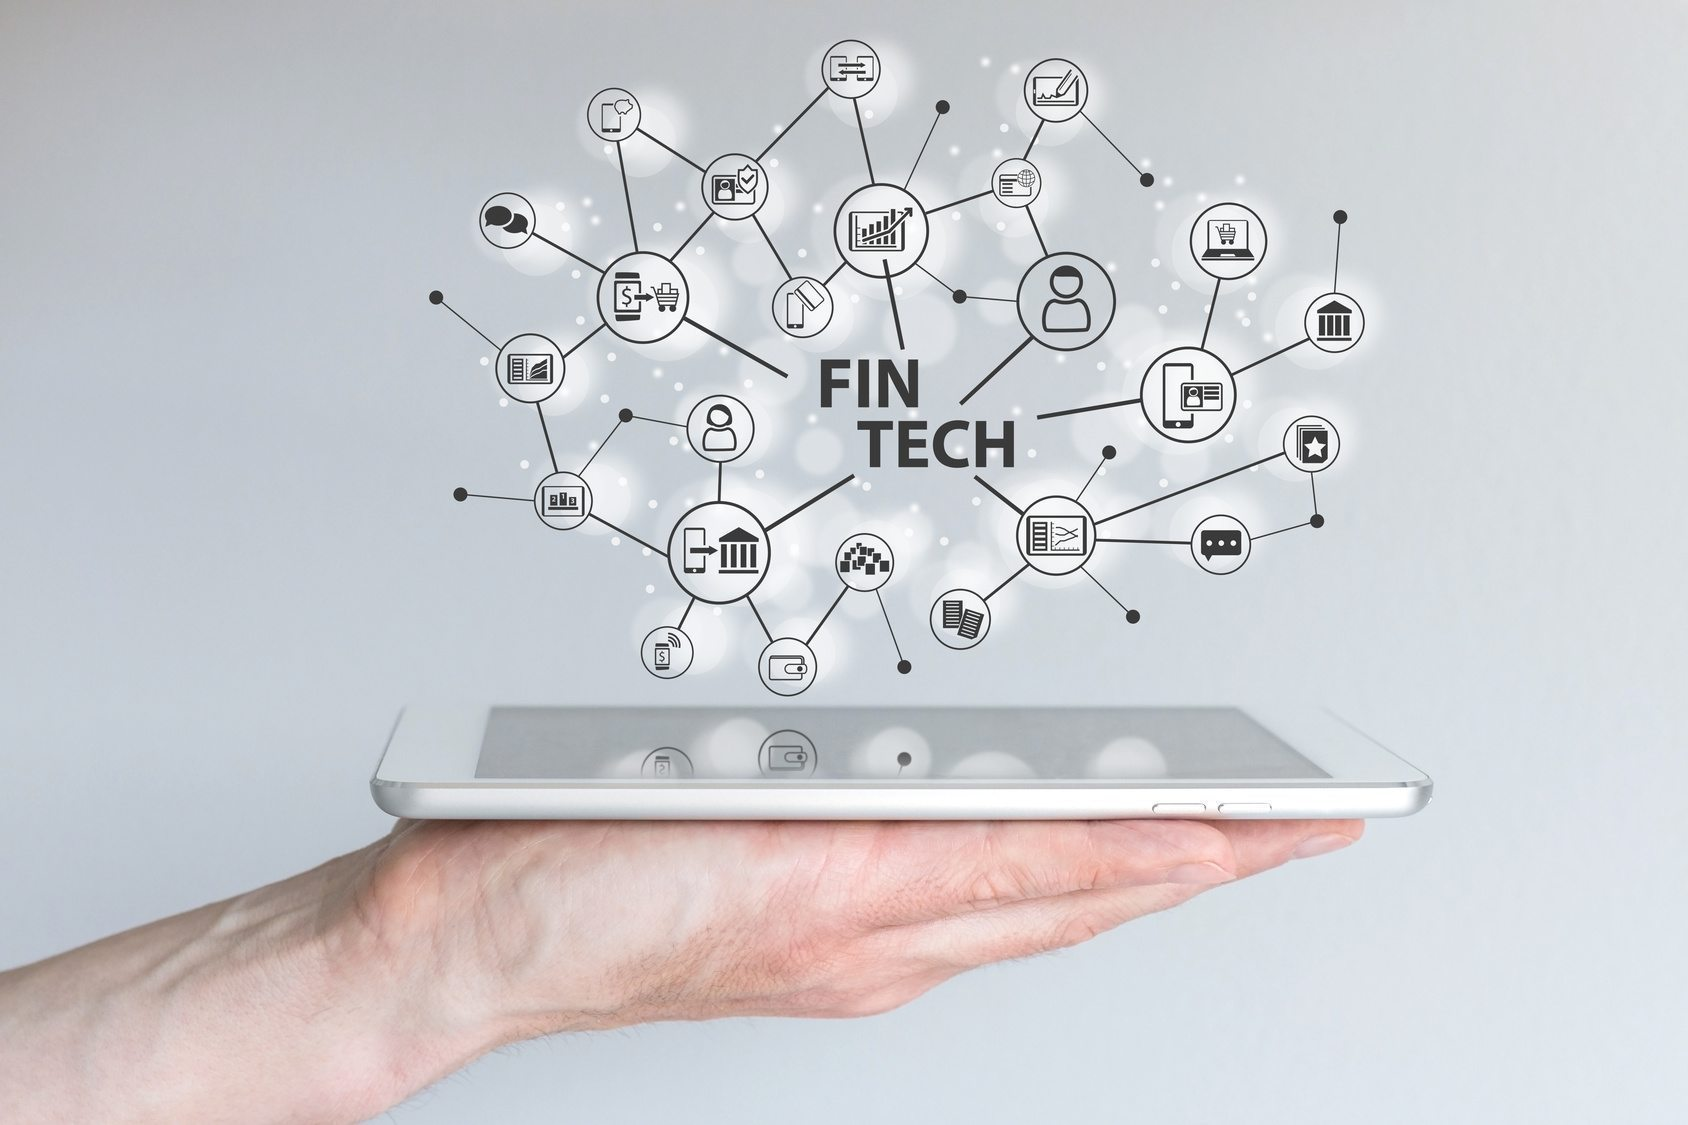 The new FinTech Bank - Chris Skinner's blog